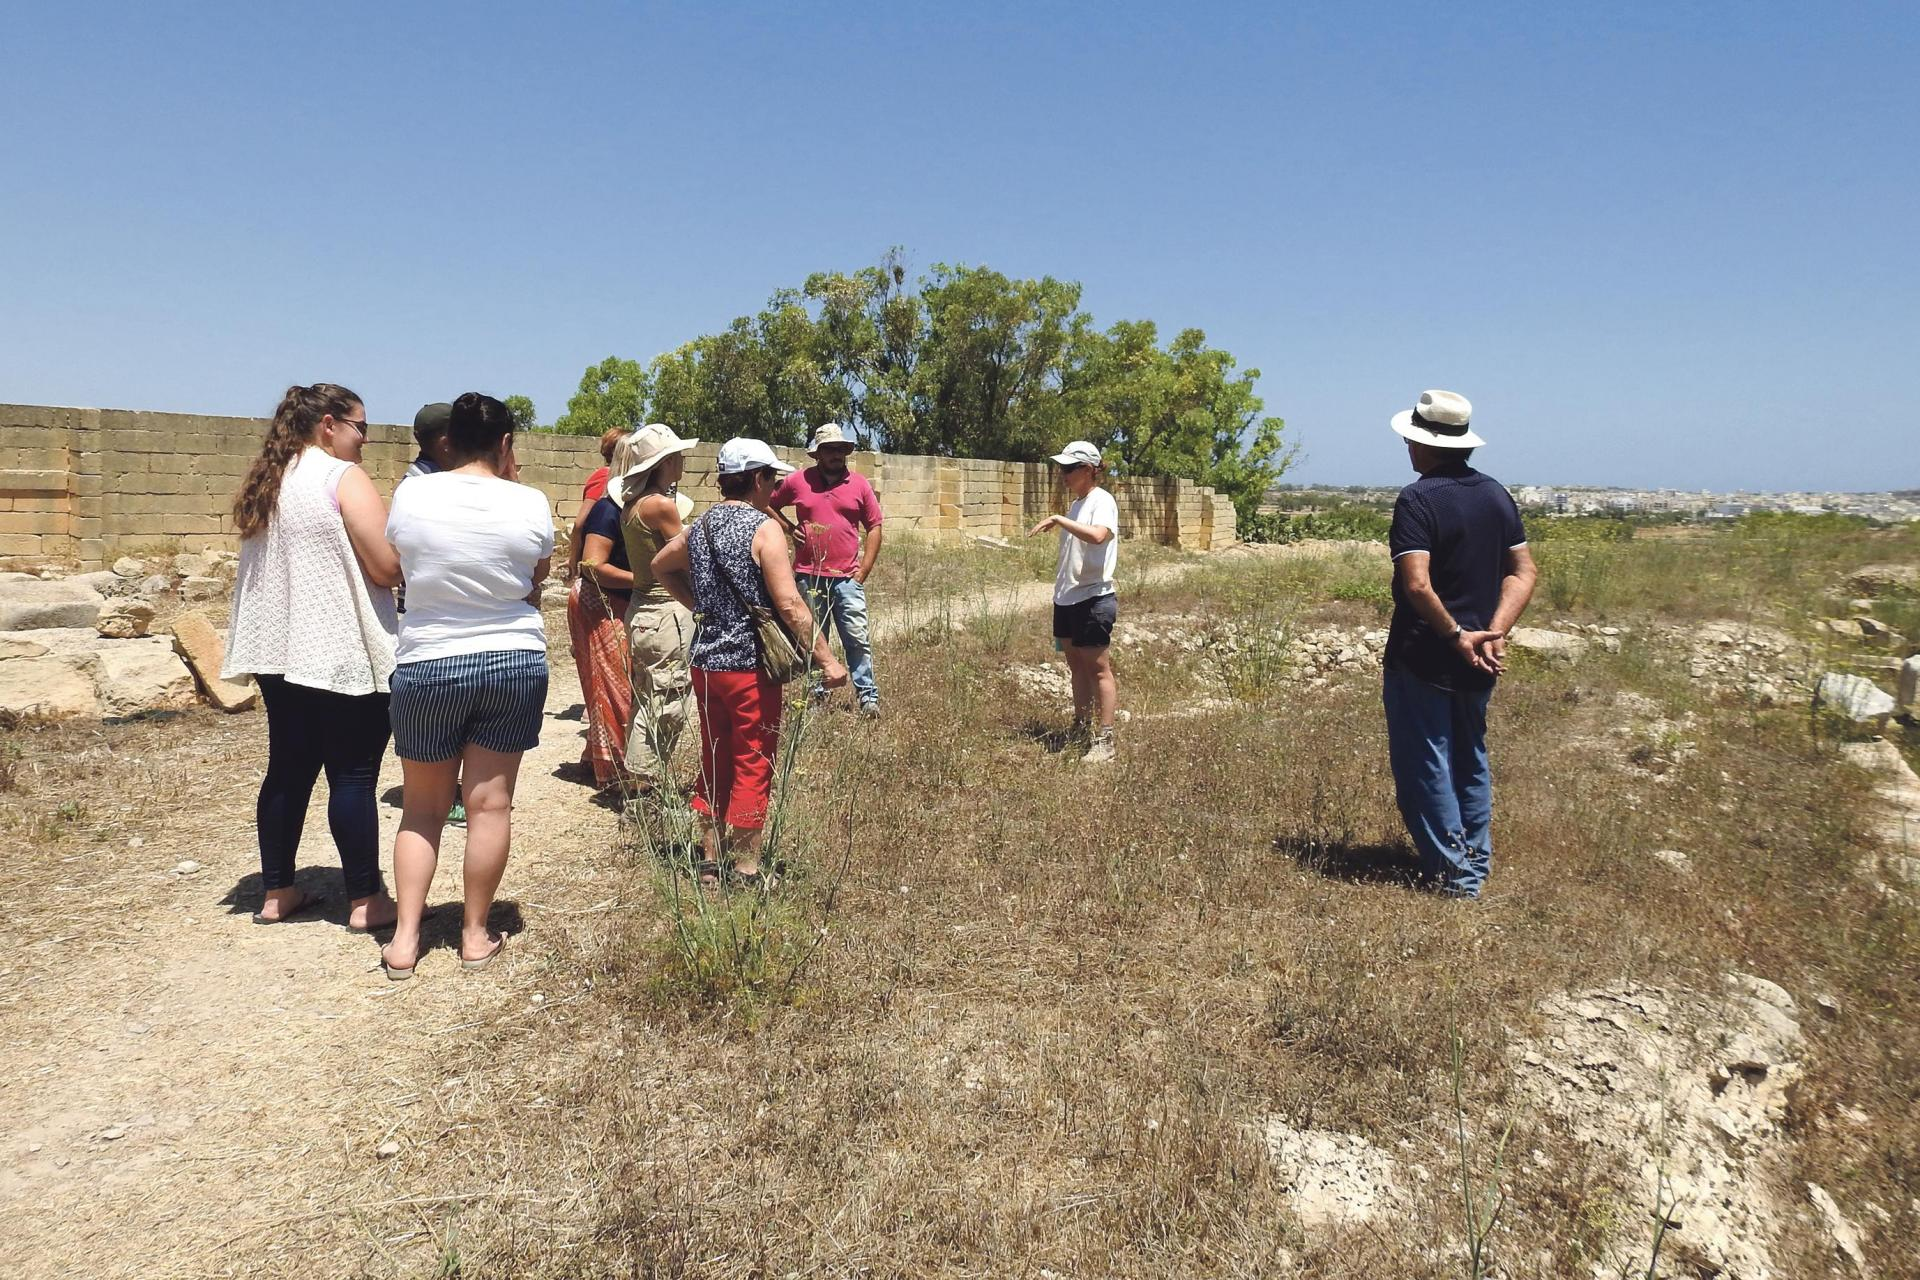 Guided tours for the public to observe the excavations and findings were held last week.